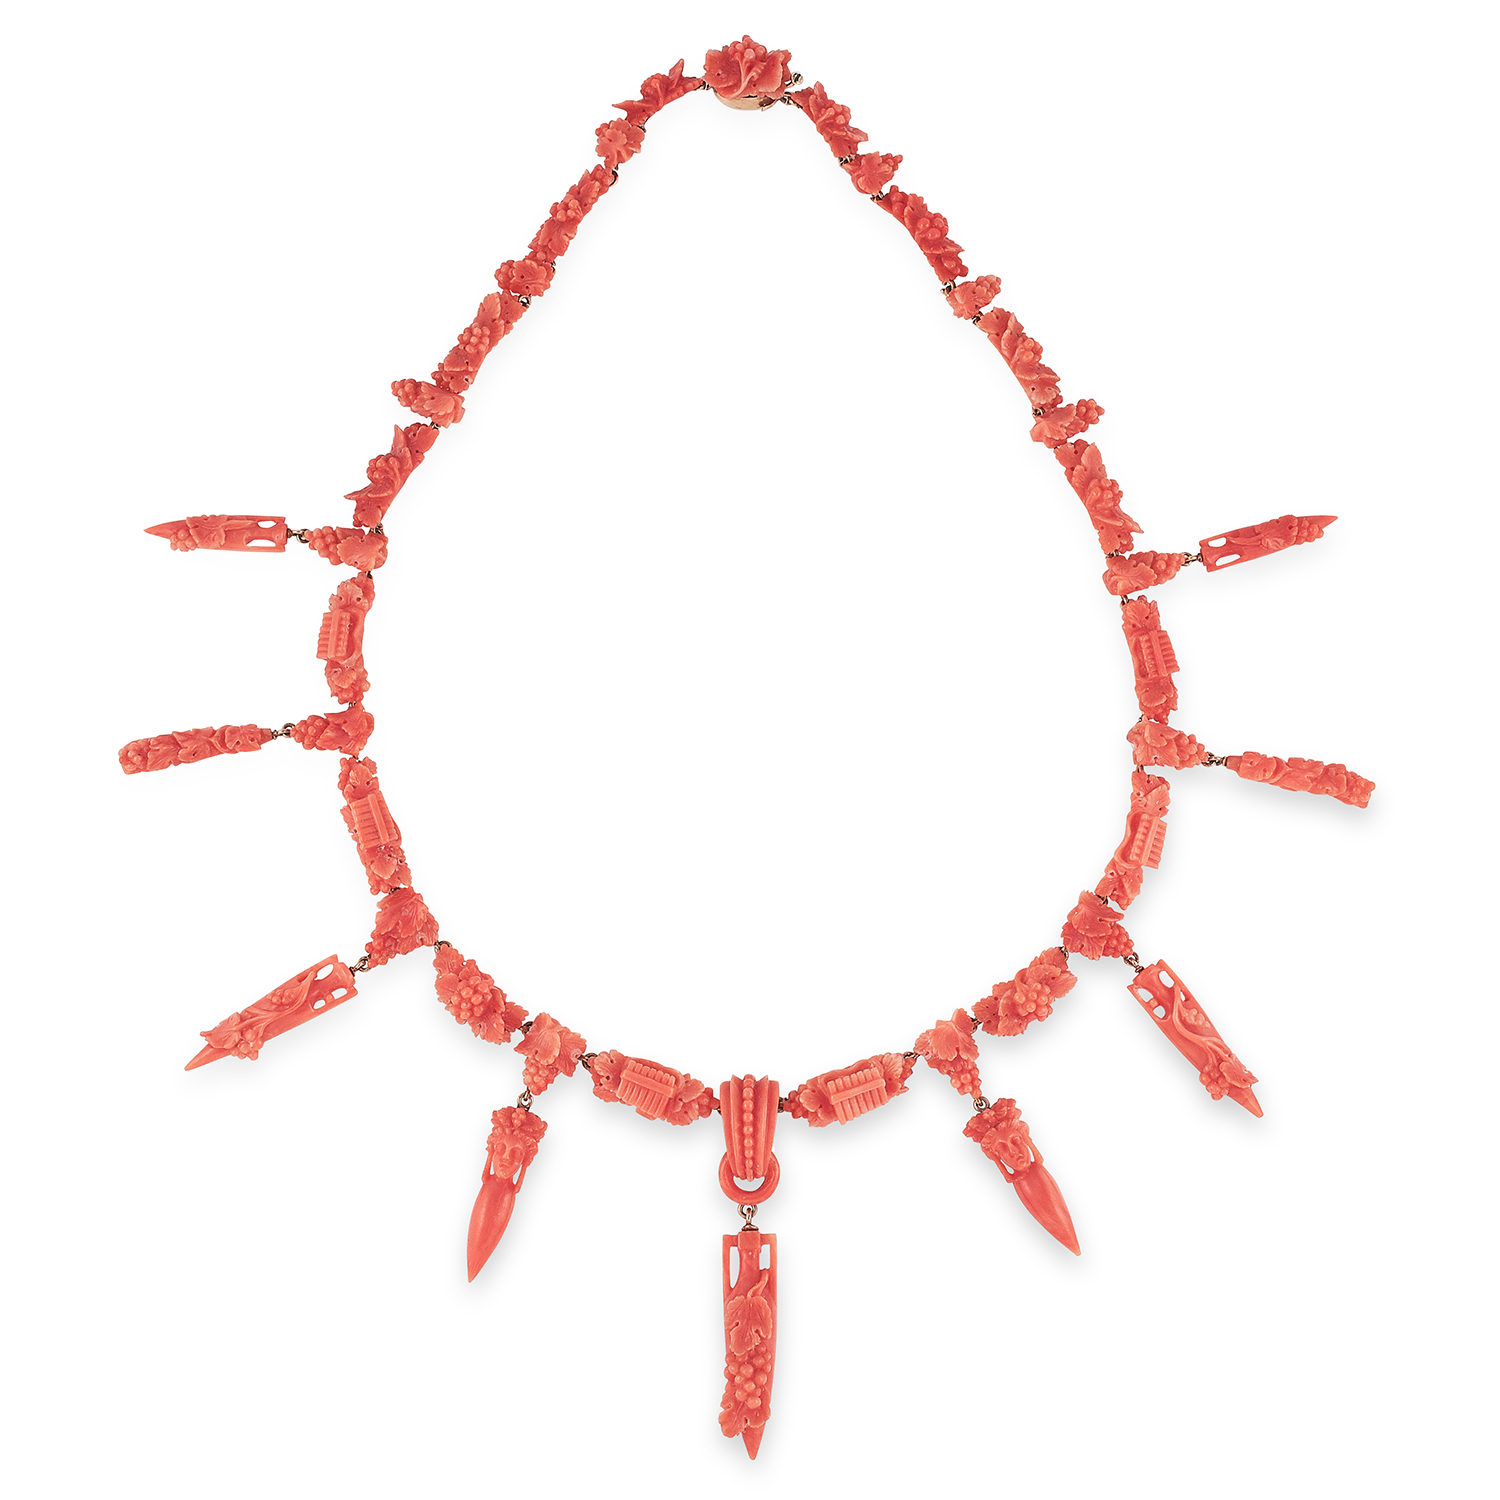 ANTIQUE CARVED CORAL NECKLACE, ITALIAN, 19TH CENTURY formed of carved links decorated with grapes,